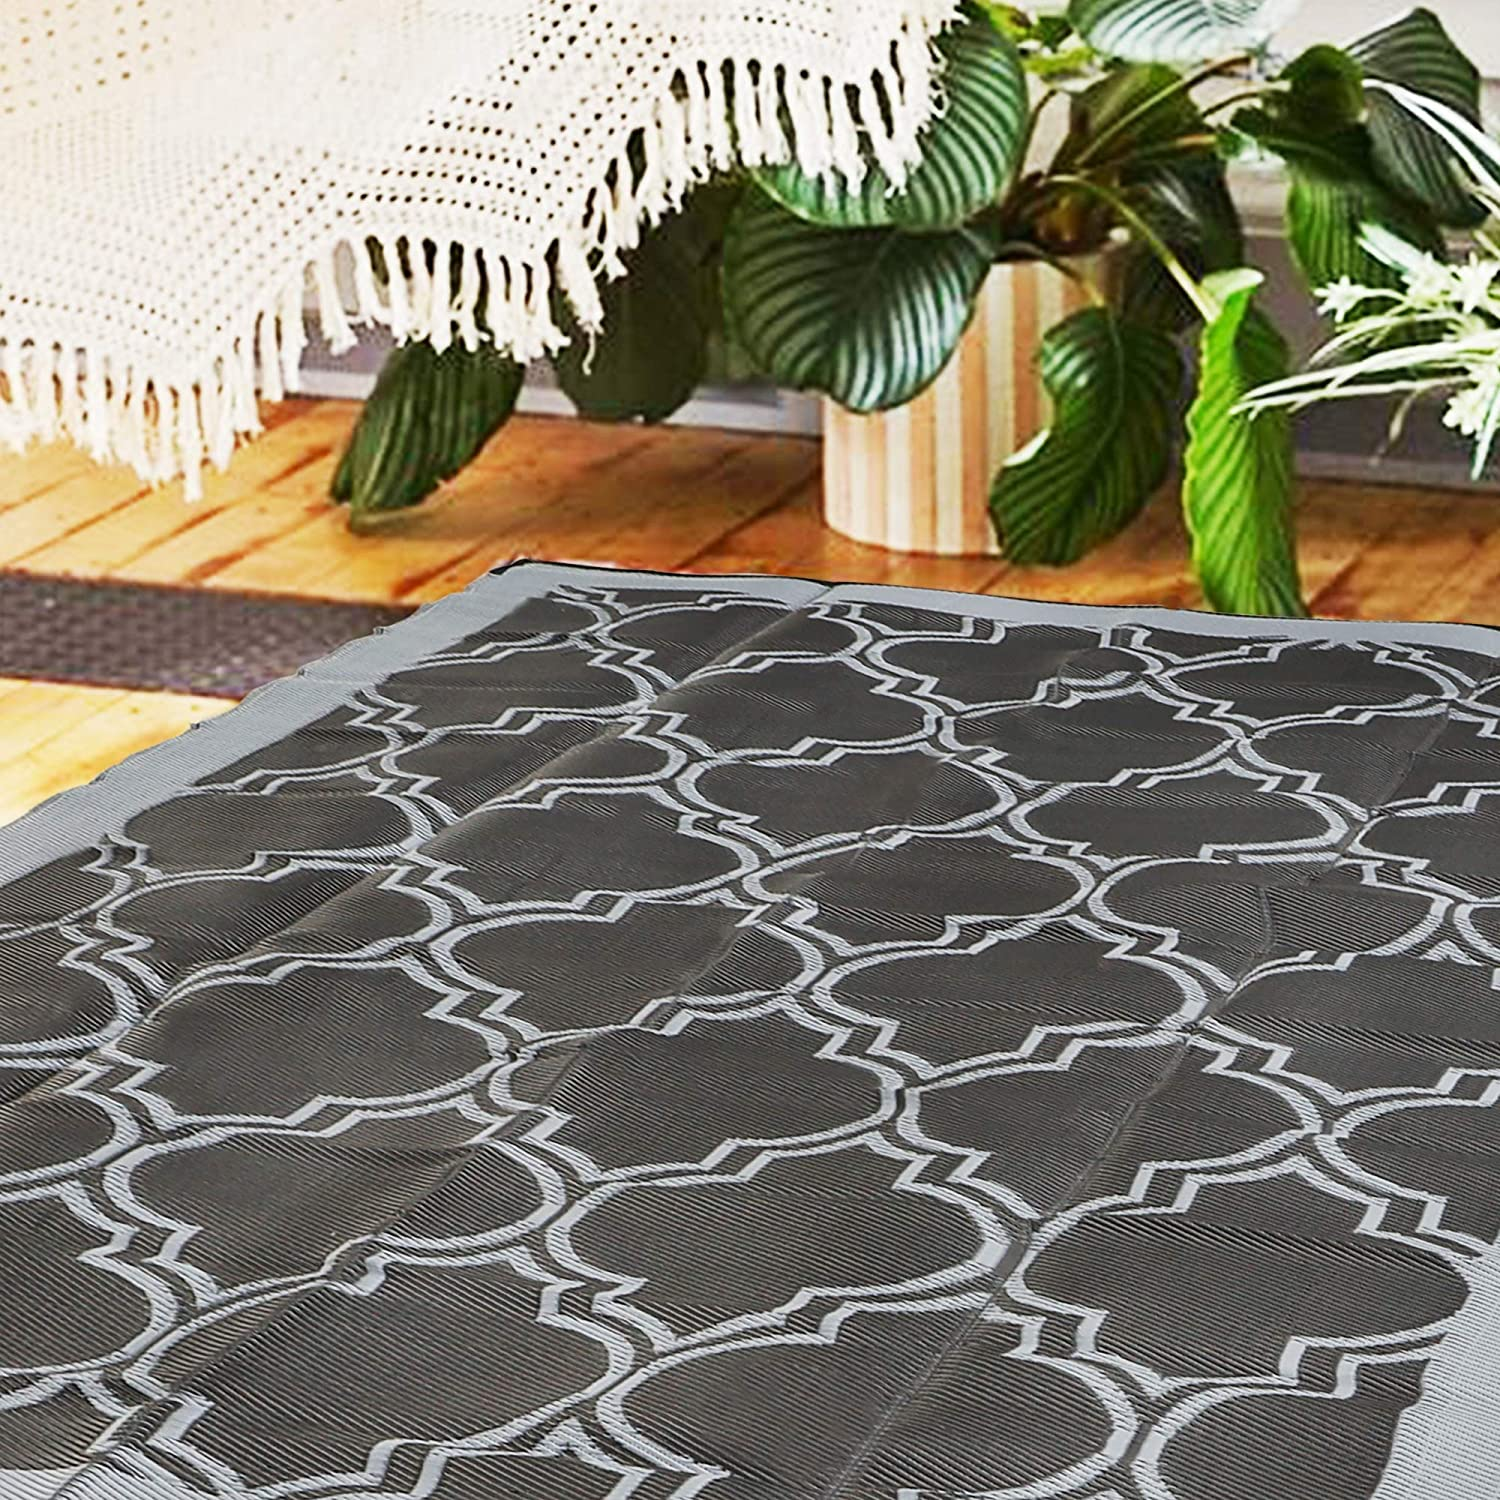 SAND MINE Reversible Mats, Plastic Straw Rug, Modern Area Rug, Large Floor Mat and Rug for Outdoors, RV, Patio, Backyard, Deck, Picnic, Beach, Trailer, Camping (5' x 8', Black Quatrefoil)